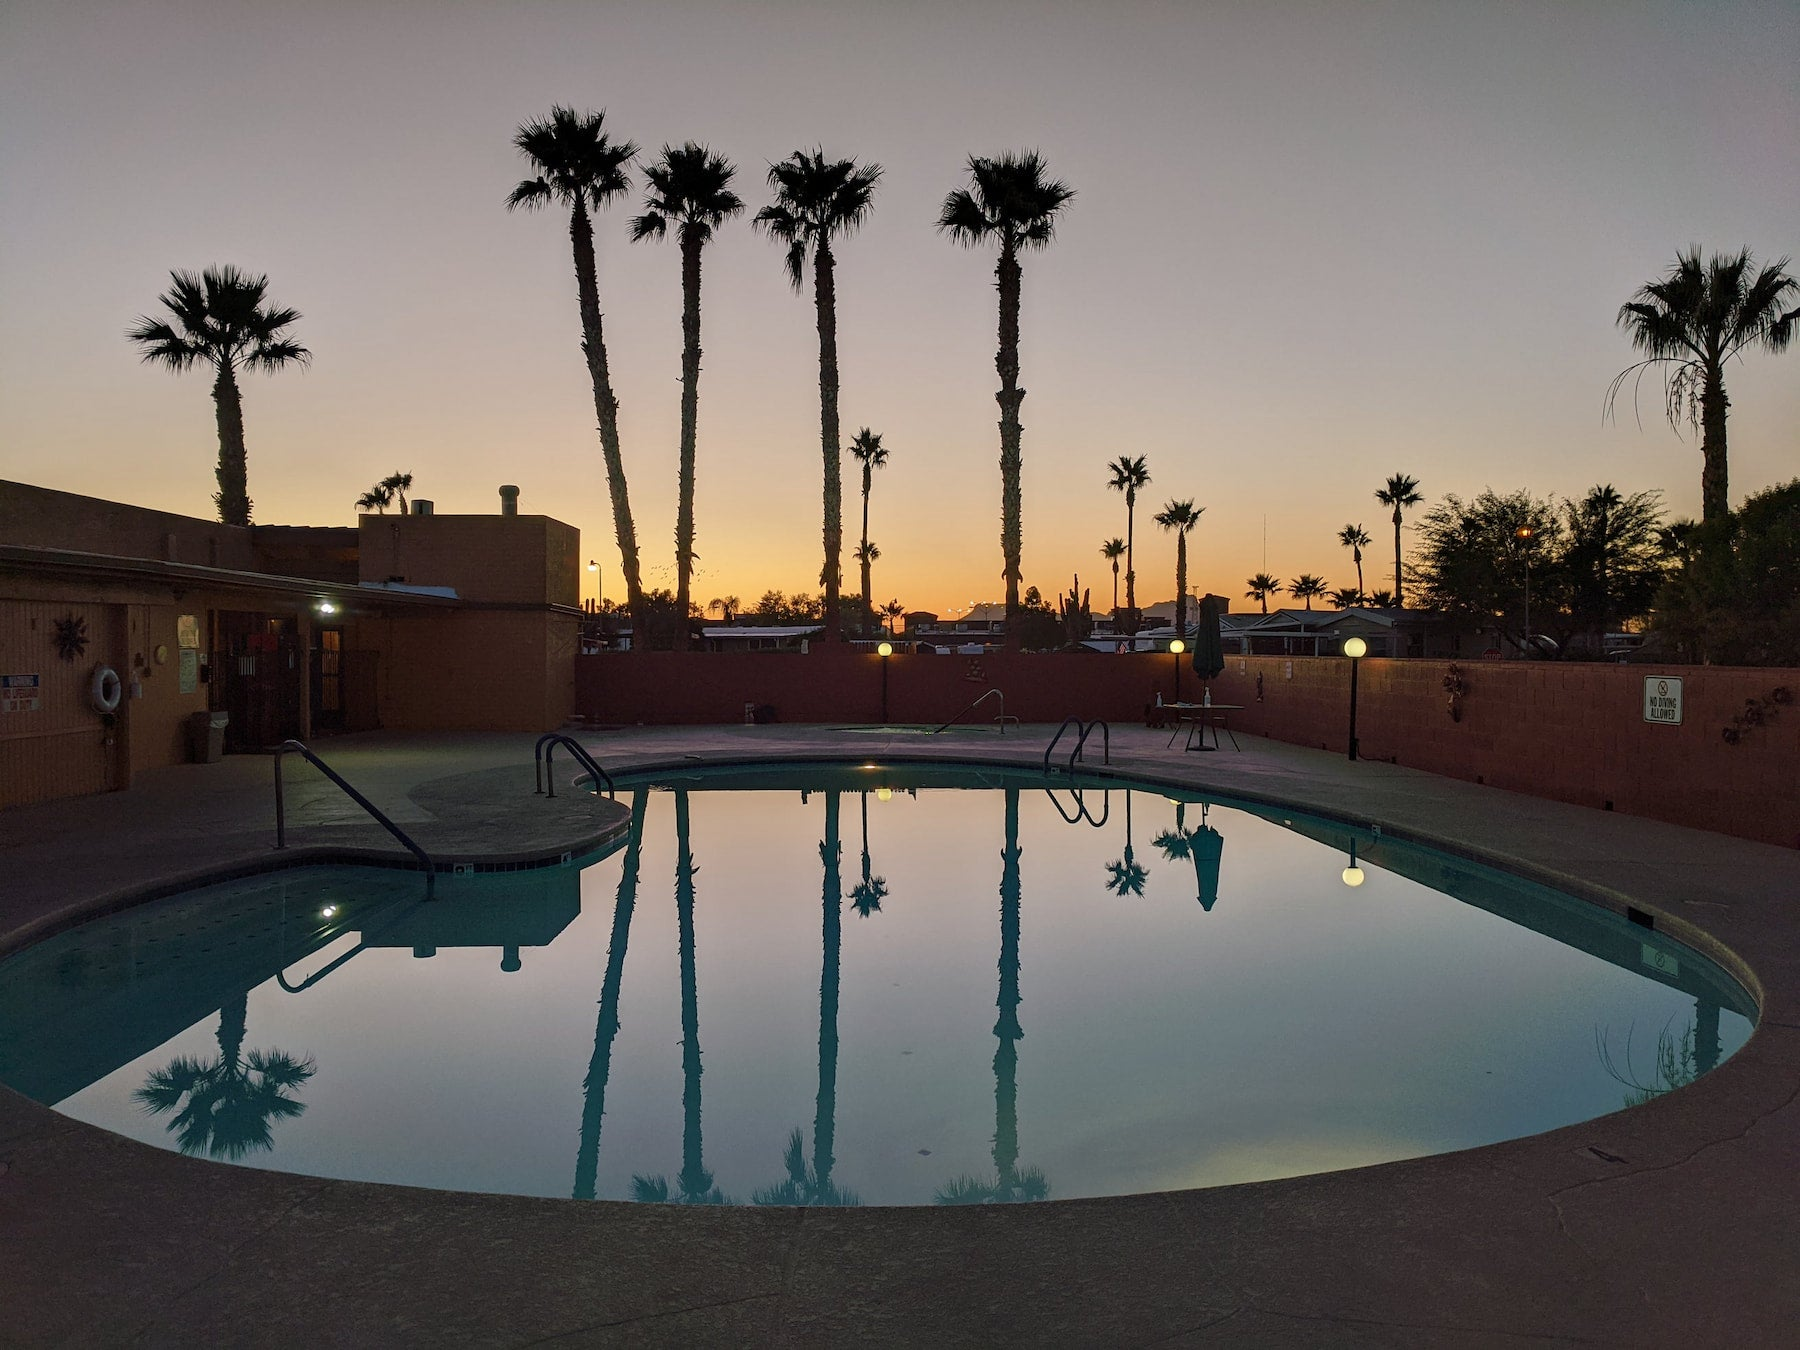 Sunset at a campground pool with tropical palm trees beside it.